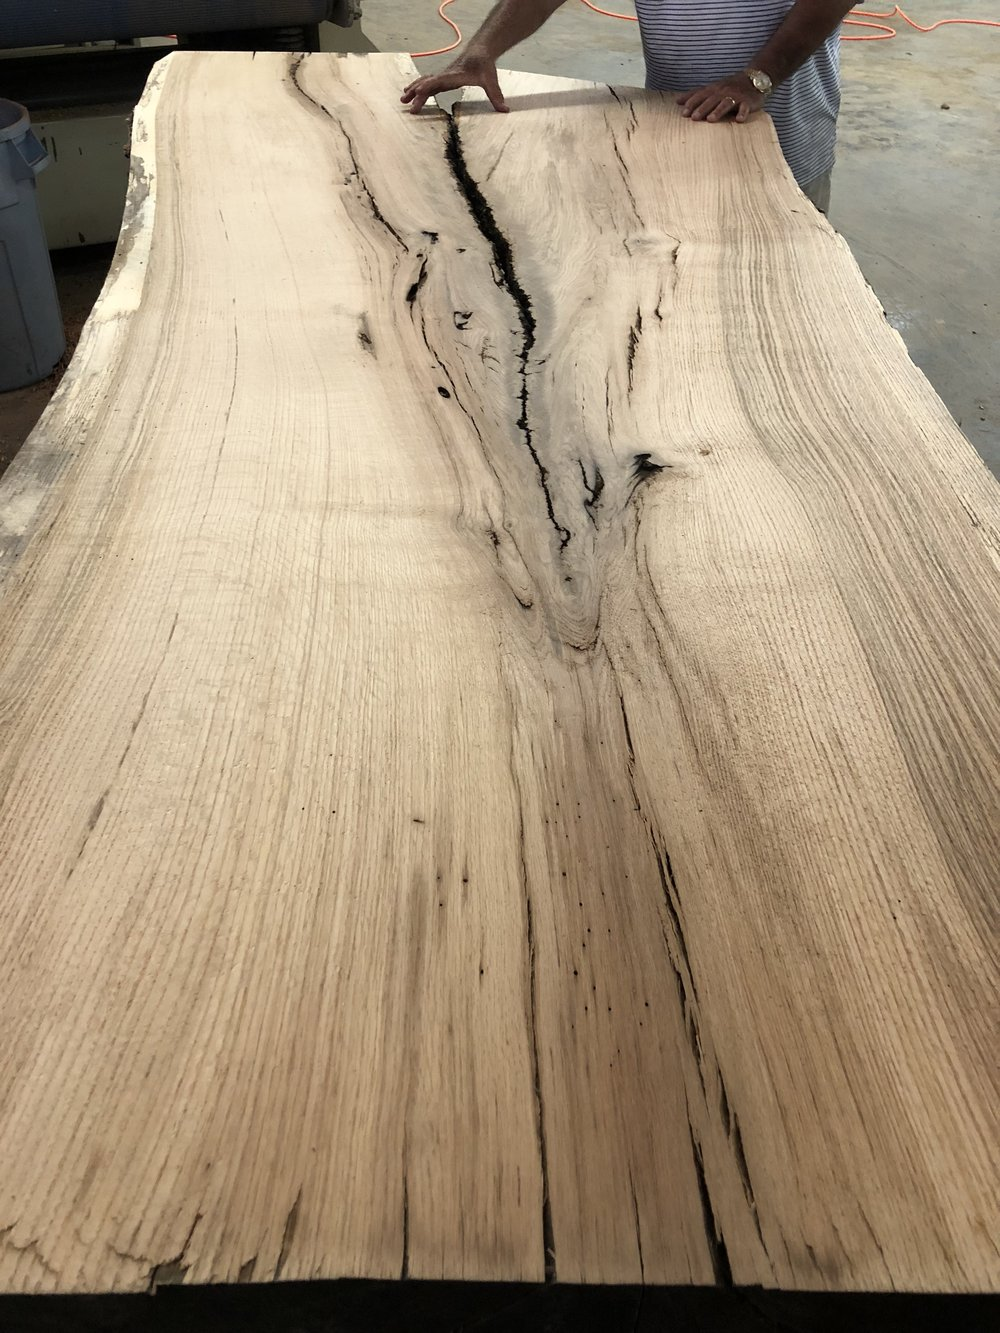 The client picked up the slabs the same day the slabs were surfaced, and delivered to a furniture maker where they will be finished into tables.